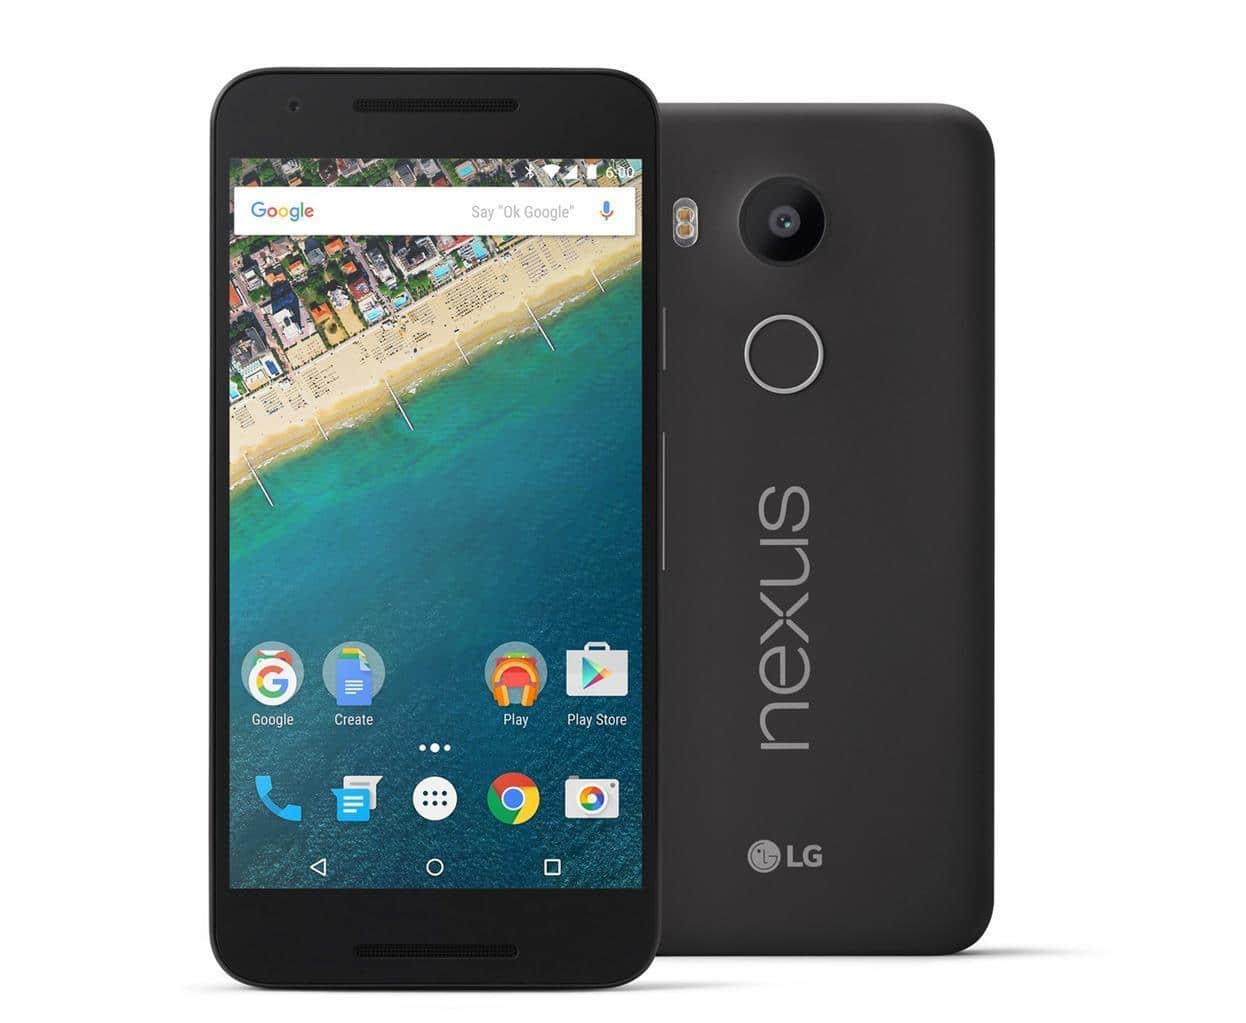 LG Nexus 5X H790 32GB (Factory GSM Unlocked) 4G LTE Android Smartphone (US Model) $260 + Free Shipping (eBay Daily Deal)